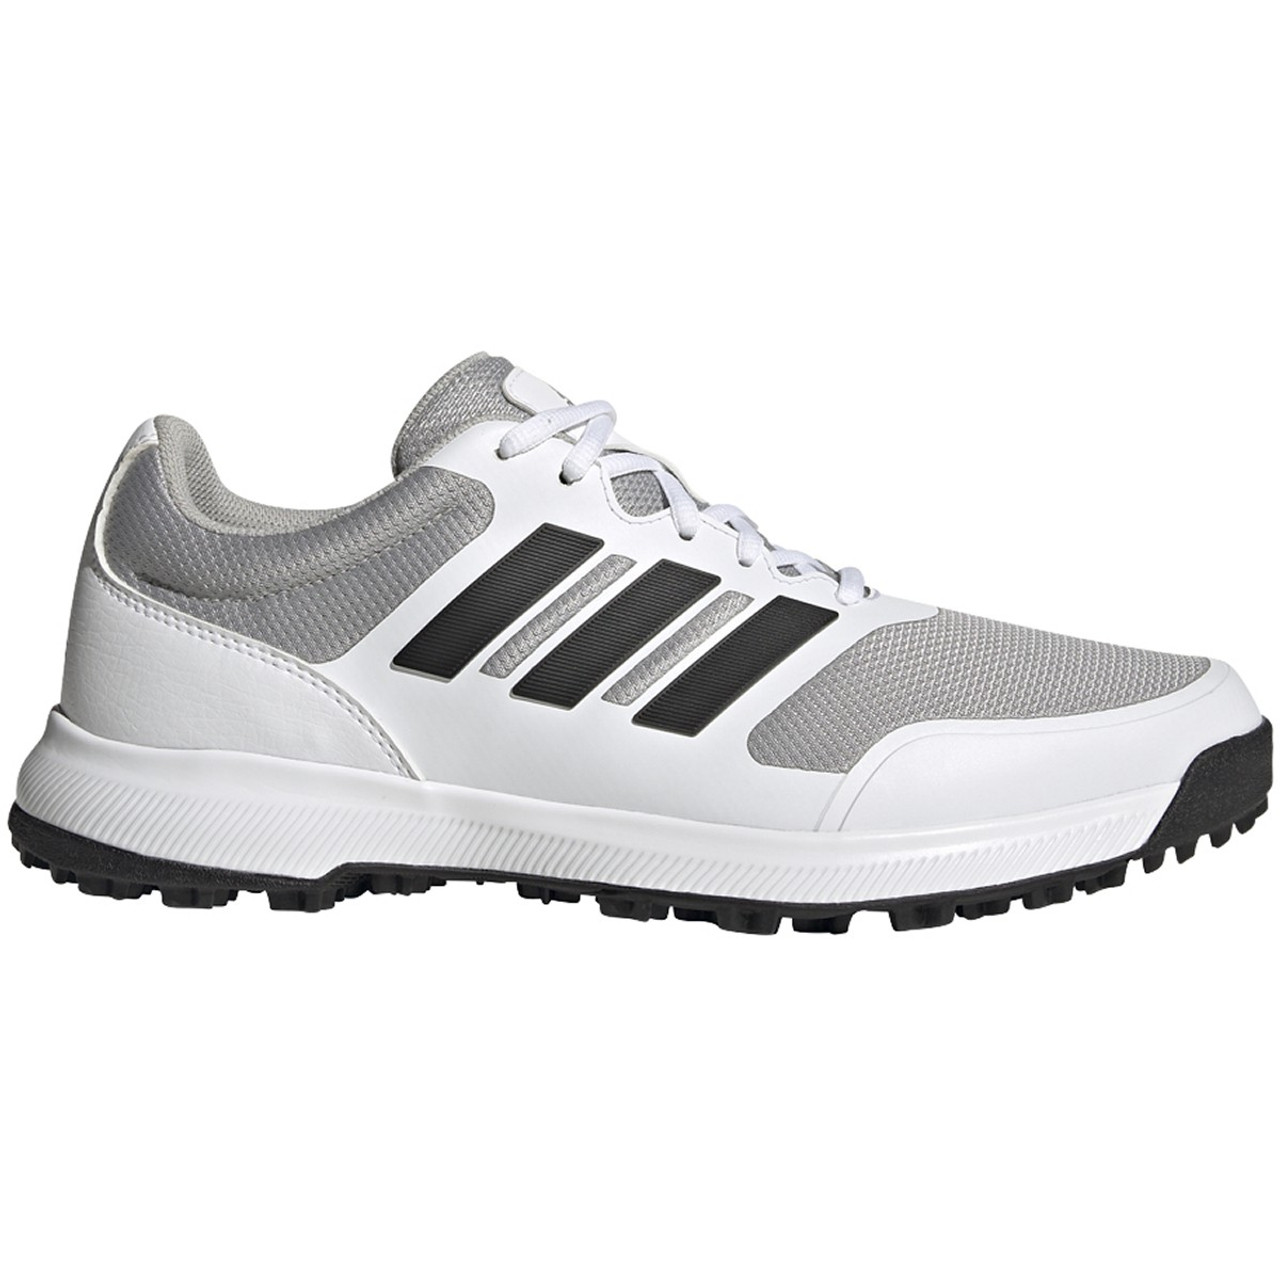 Adidas Tech Response Spikeless Golf Shoes - White / Black / Grey Two